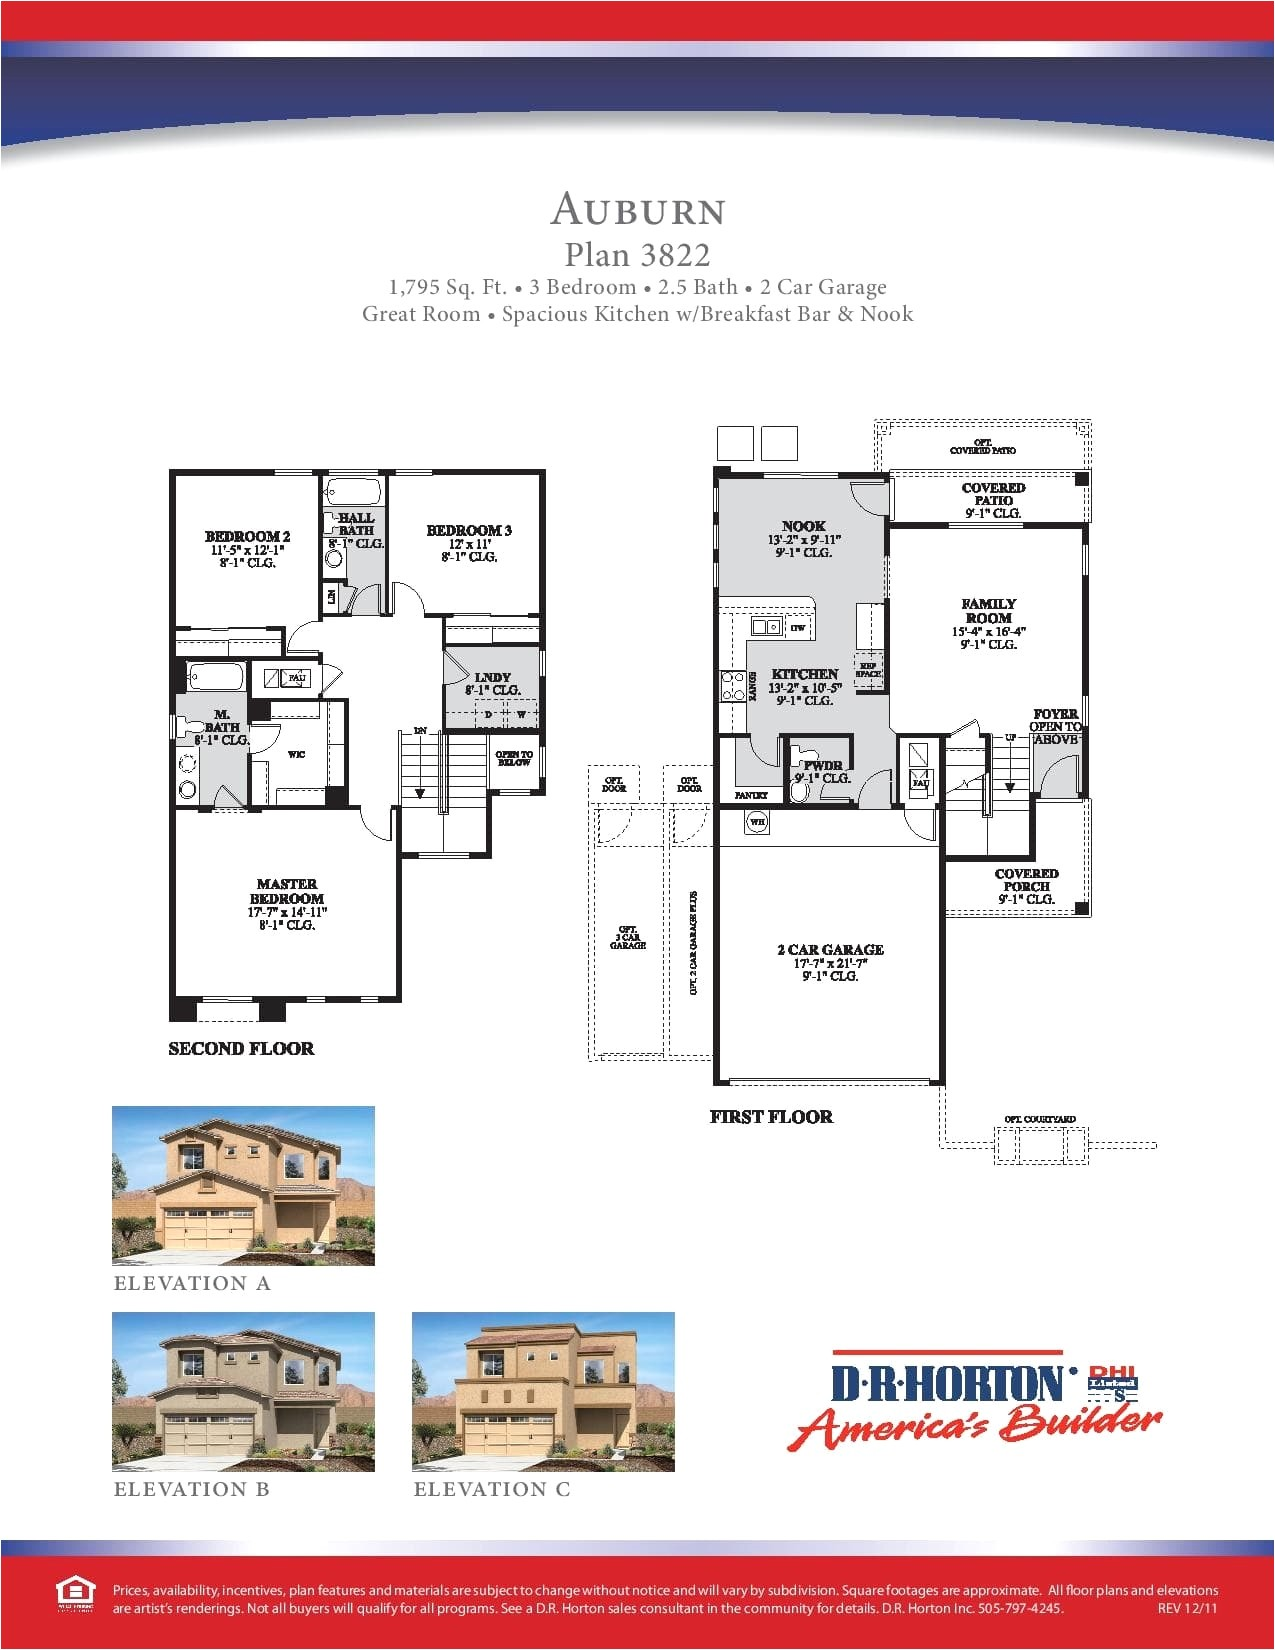 Dr Horton Home Share Floor Plans 10 Awesome Dr Horton Floor Plans House and Floor Plan